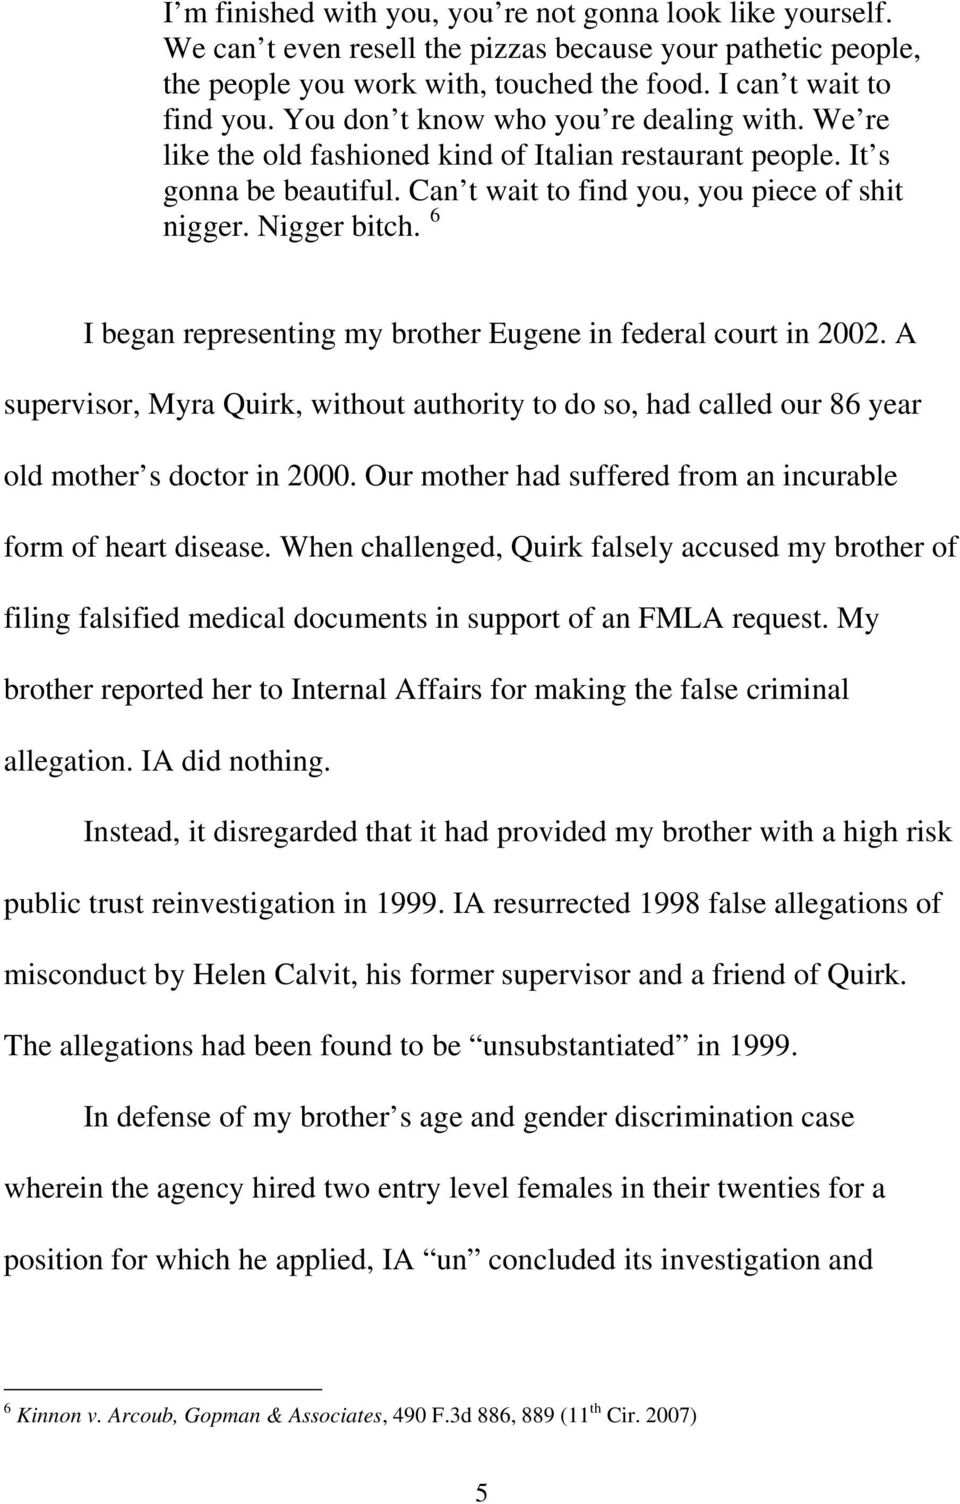 6 I began representing my brother Eugene in federal court in 2002. A supervisor, Myra Quirk, without authority to do so, had called our 86 year old mother s doctor in 2000.